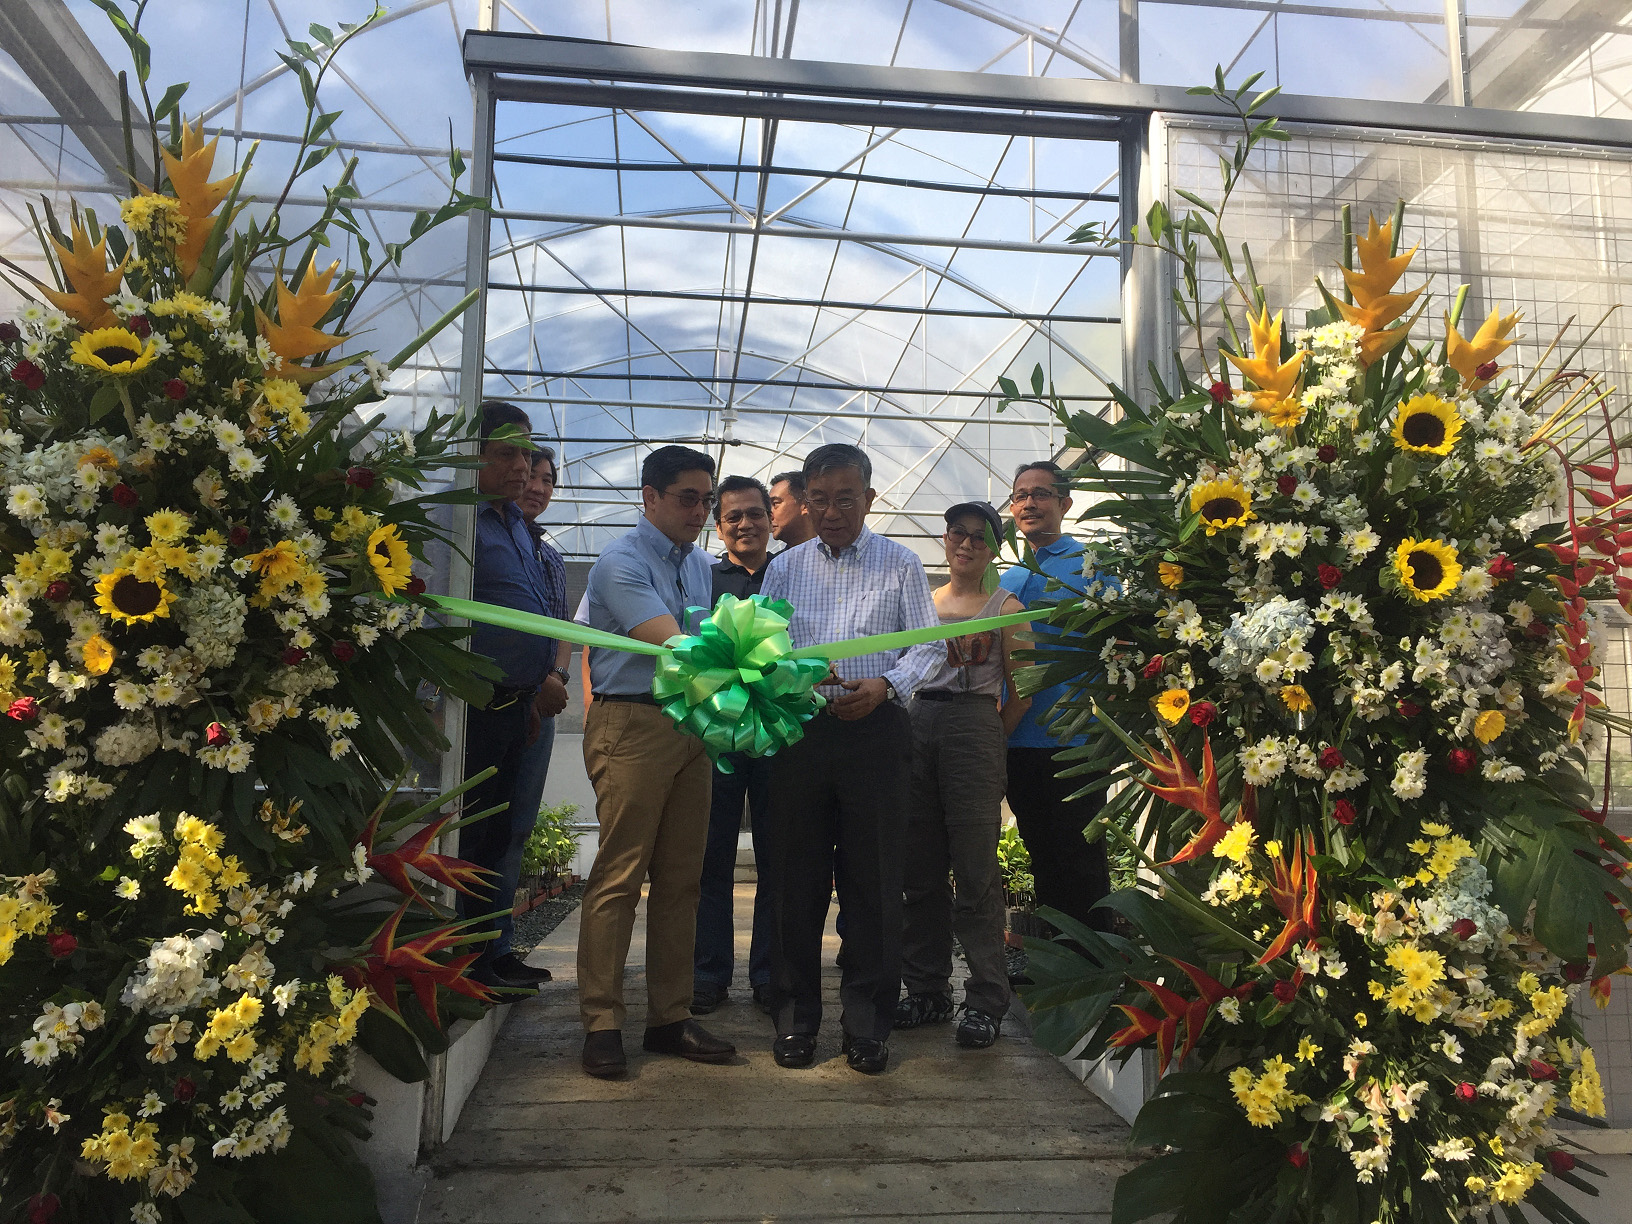 The BINHI automated nursery in Antipolo was opened in 2018 to propagate 96 Philippine native tree species and provide seedlings to EDC's BINHI partners in Luzon